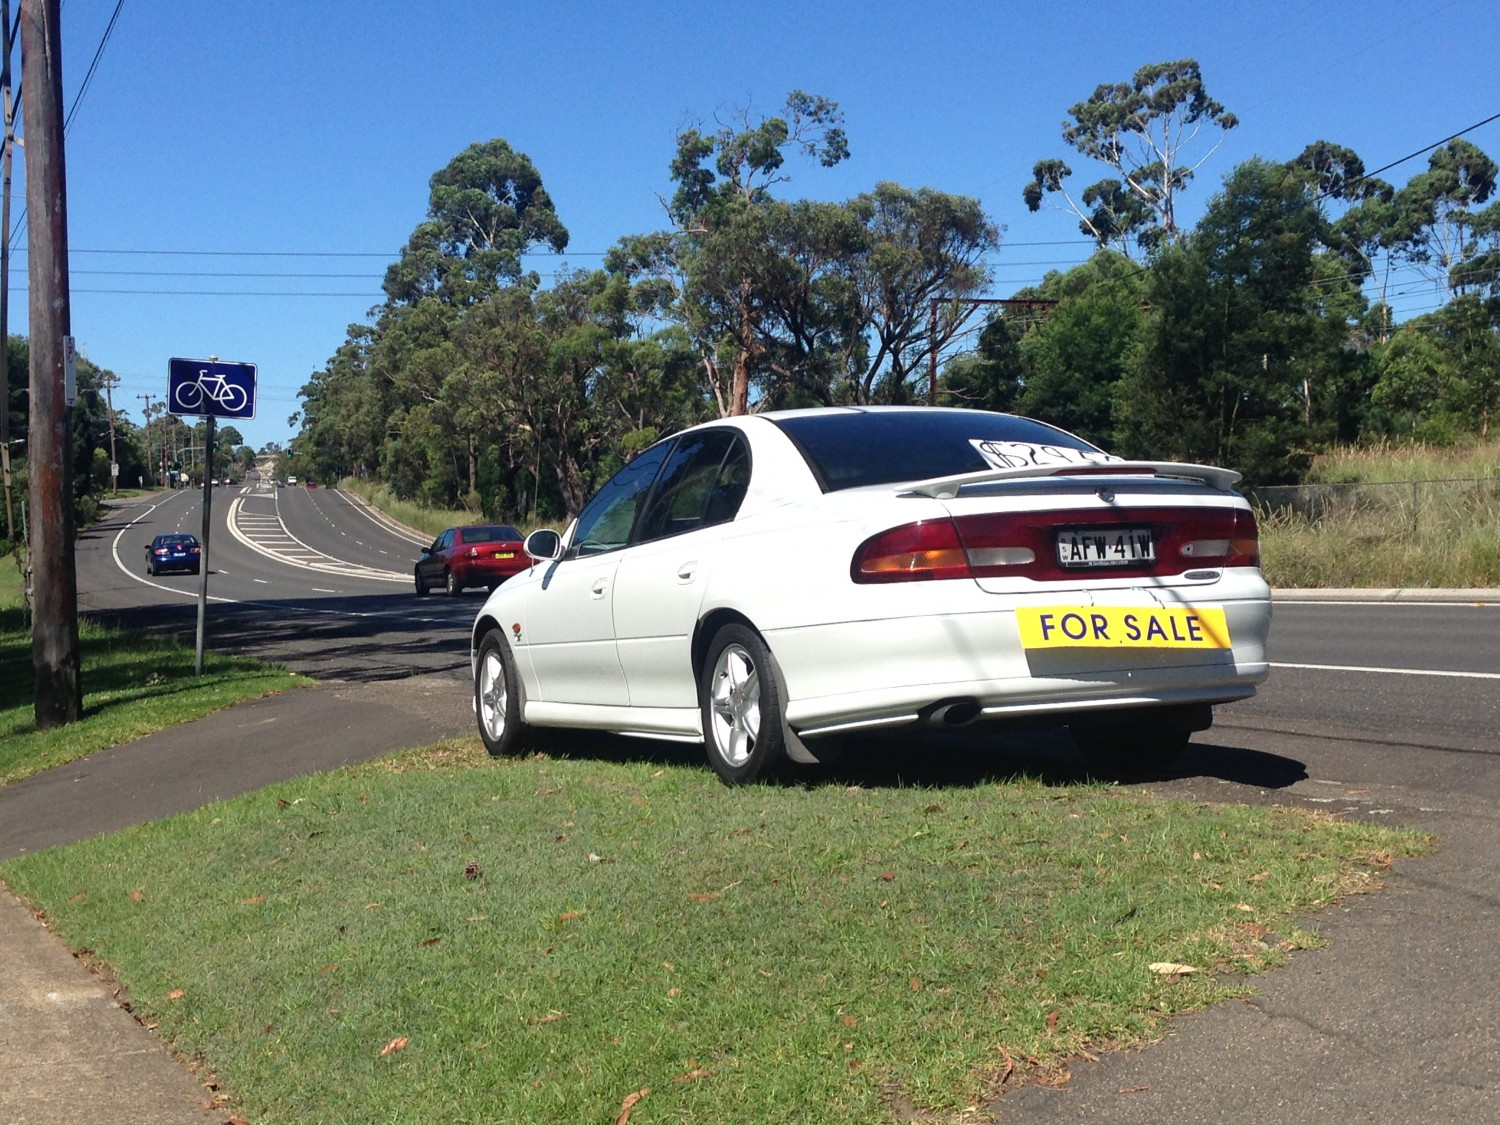 1998 Holden VT Commodore - Supercharged V6 - Johnsuss